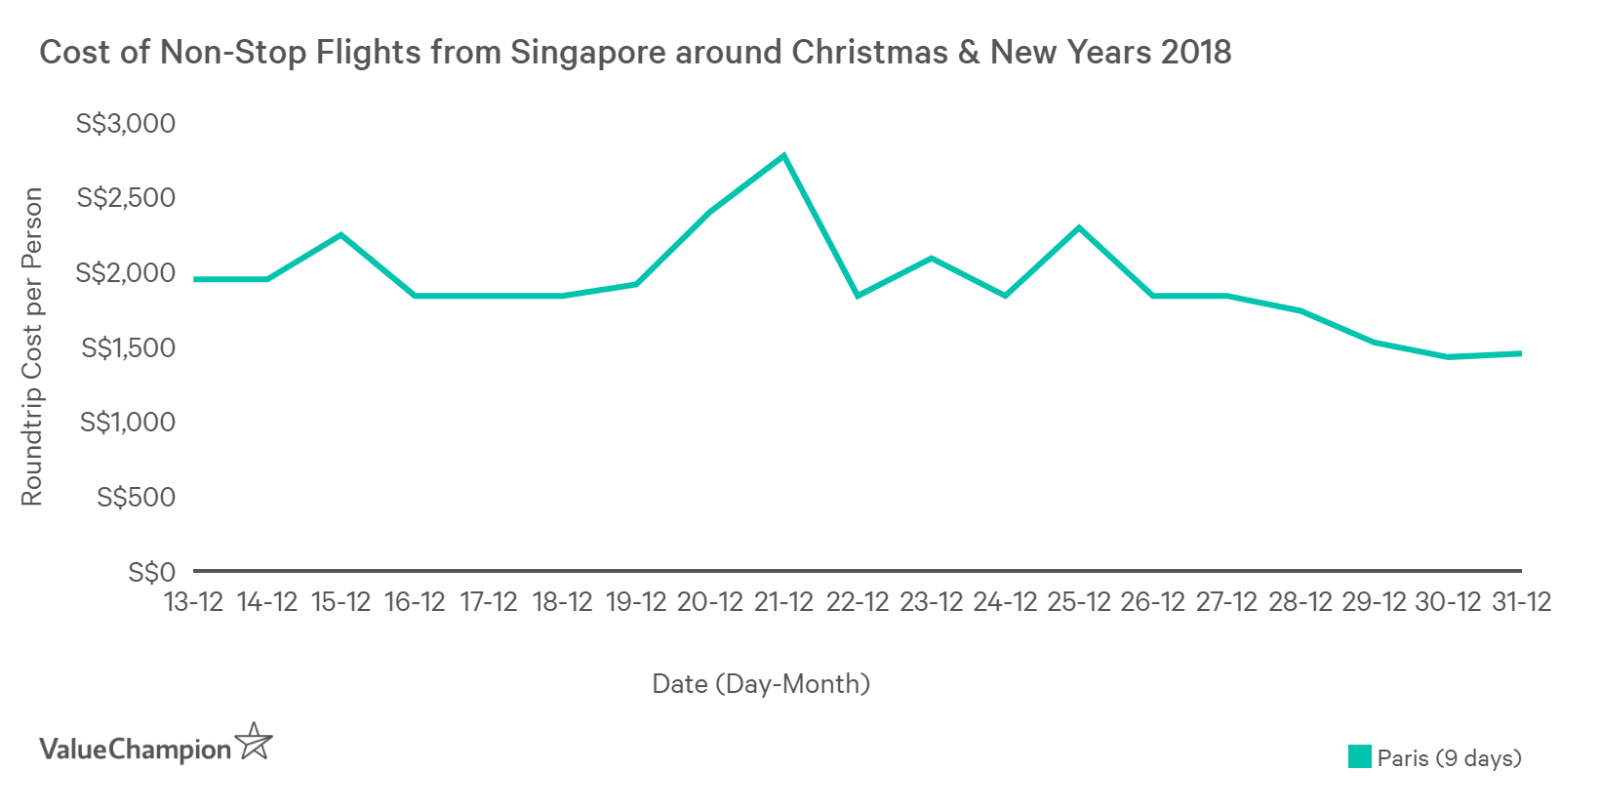 This graph shows cost of round-trip tickets for non-stop flights from Singapore to Paris around Christmas ranges from S$1,500 to S$2,800